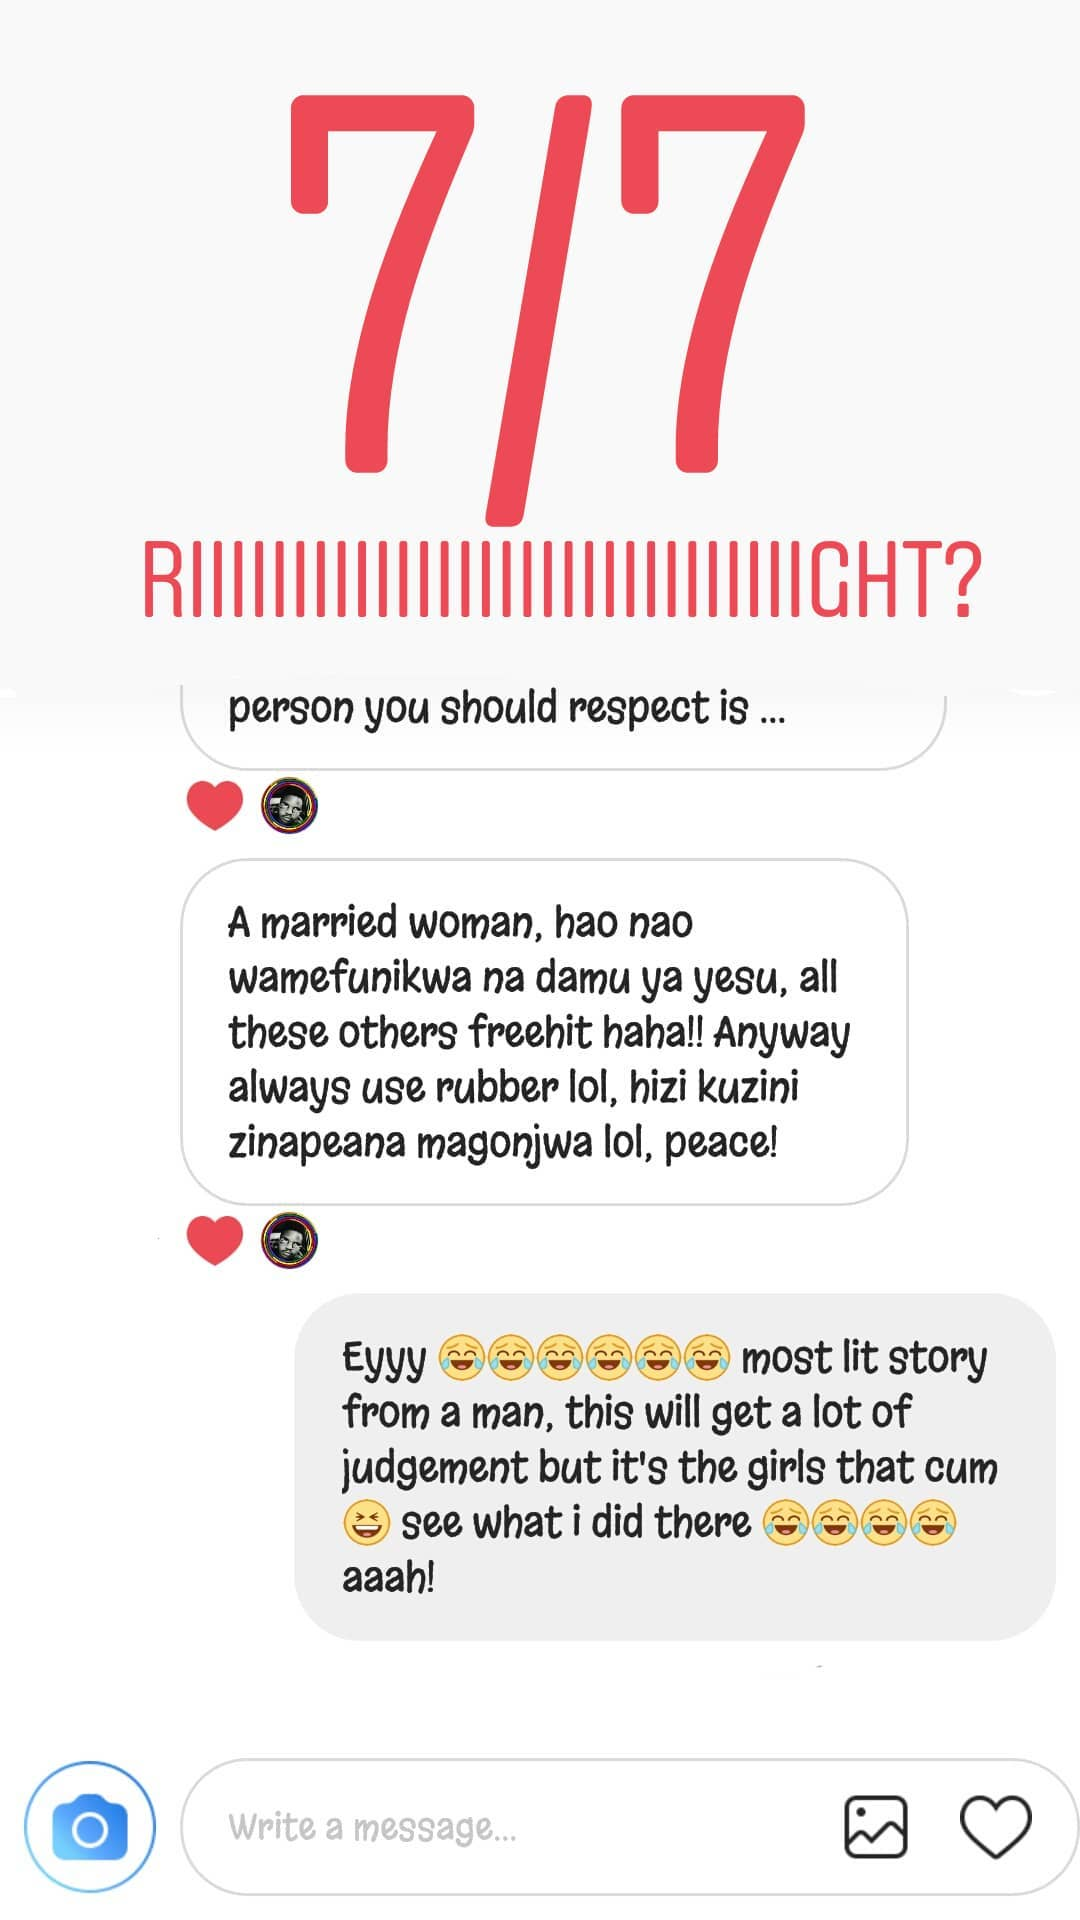 women 118 - 'I smashed my girlfriend's sister and she tasted better,' Kenyans talk about cheating